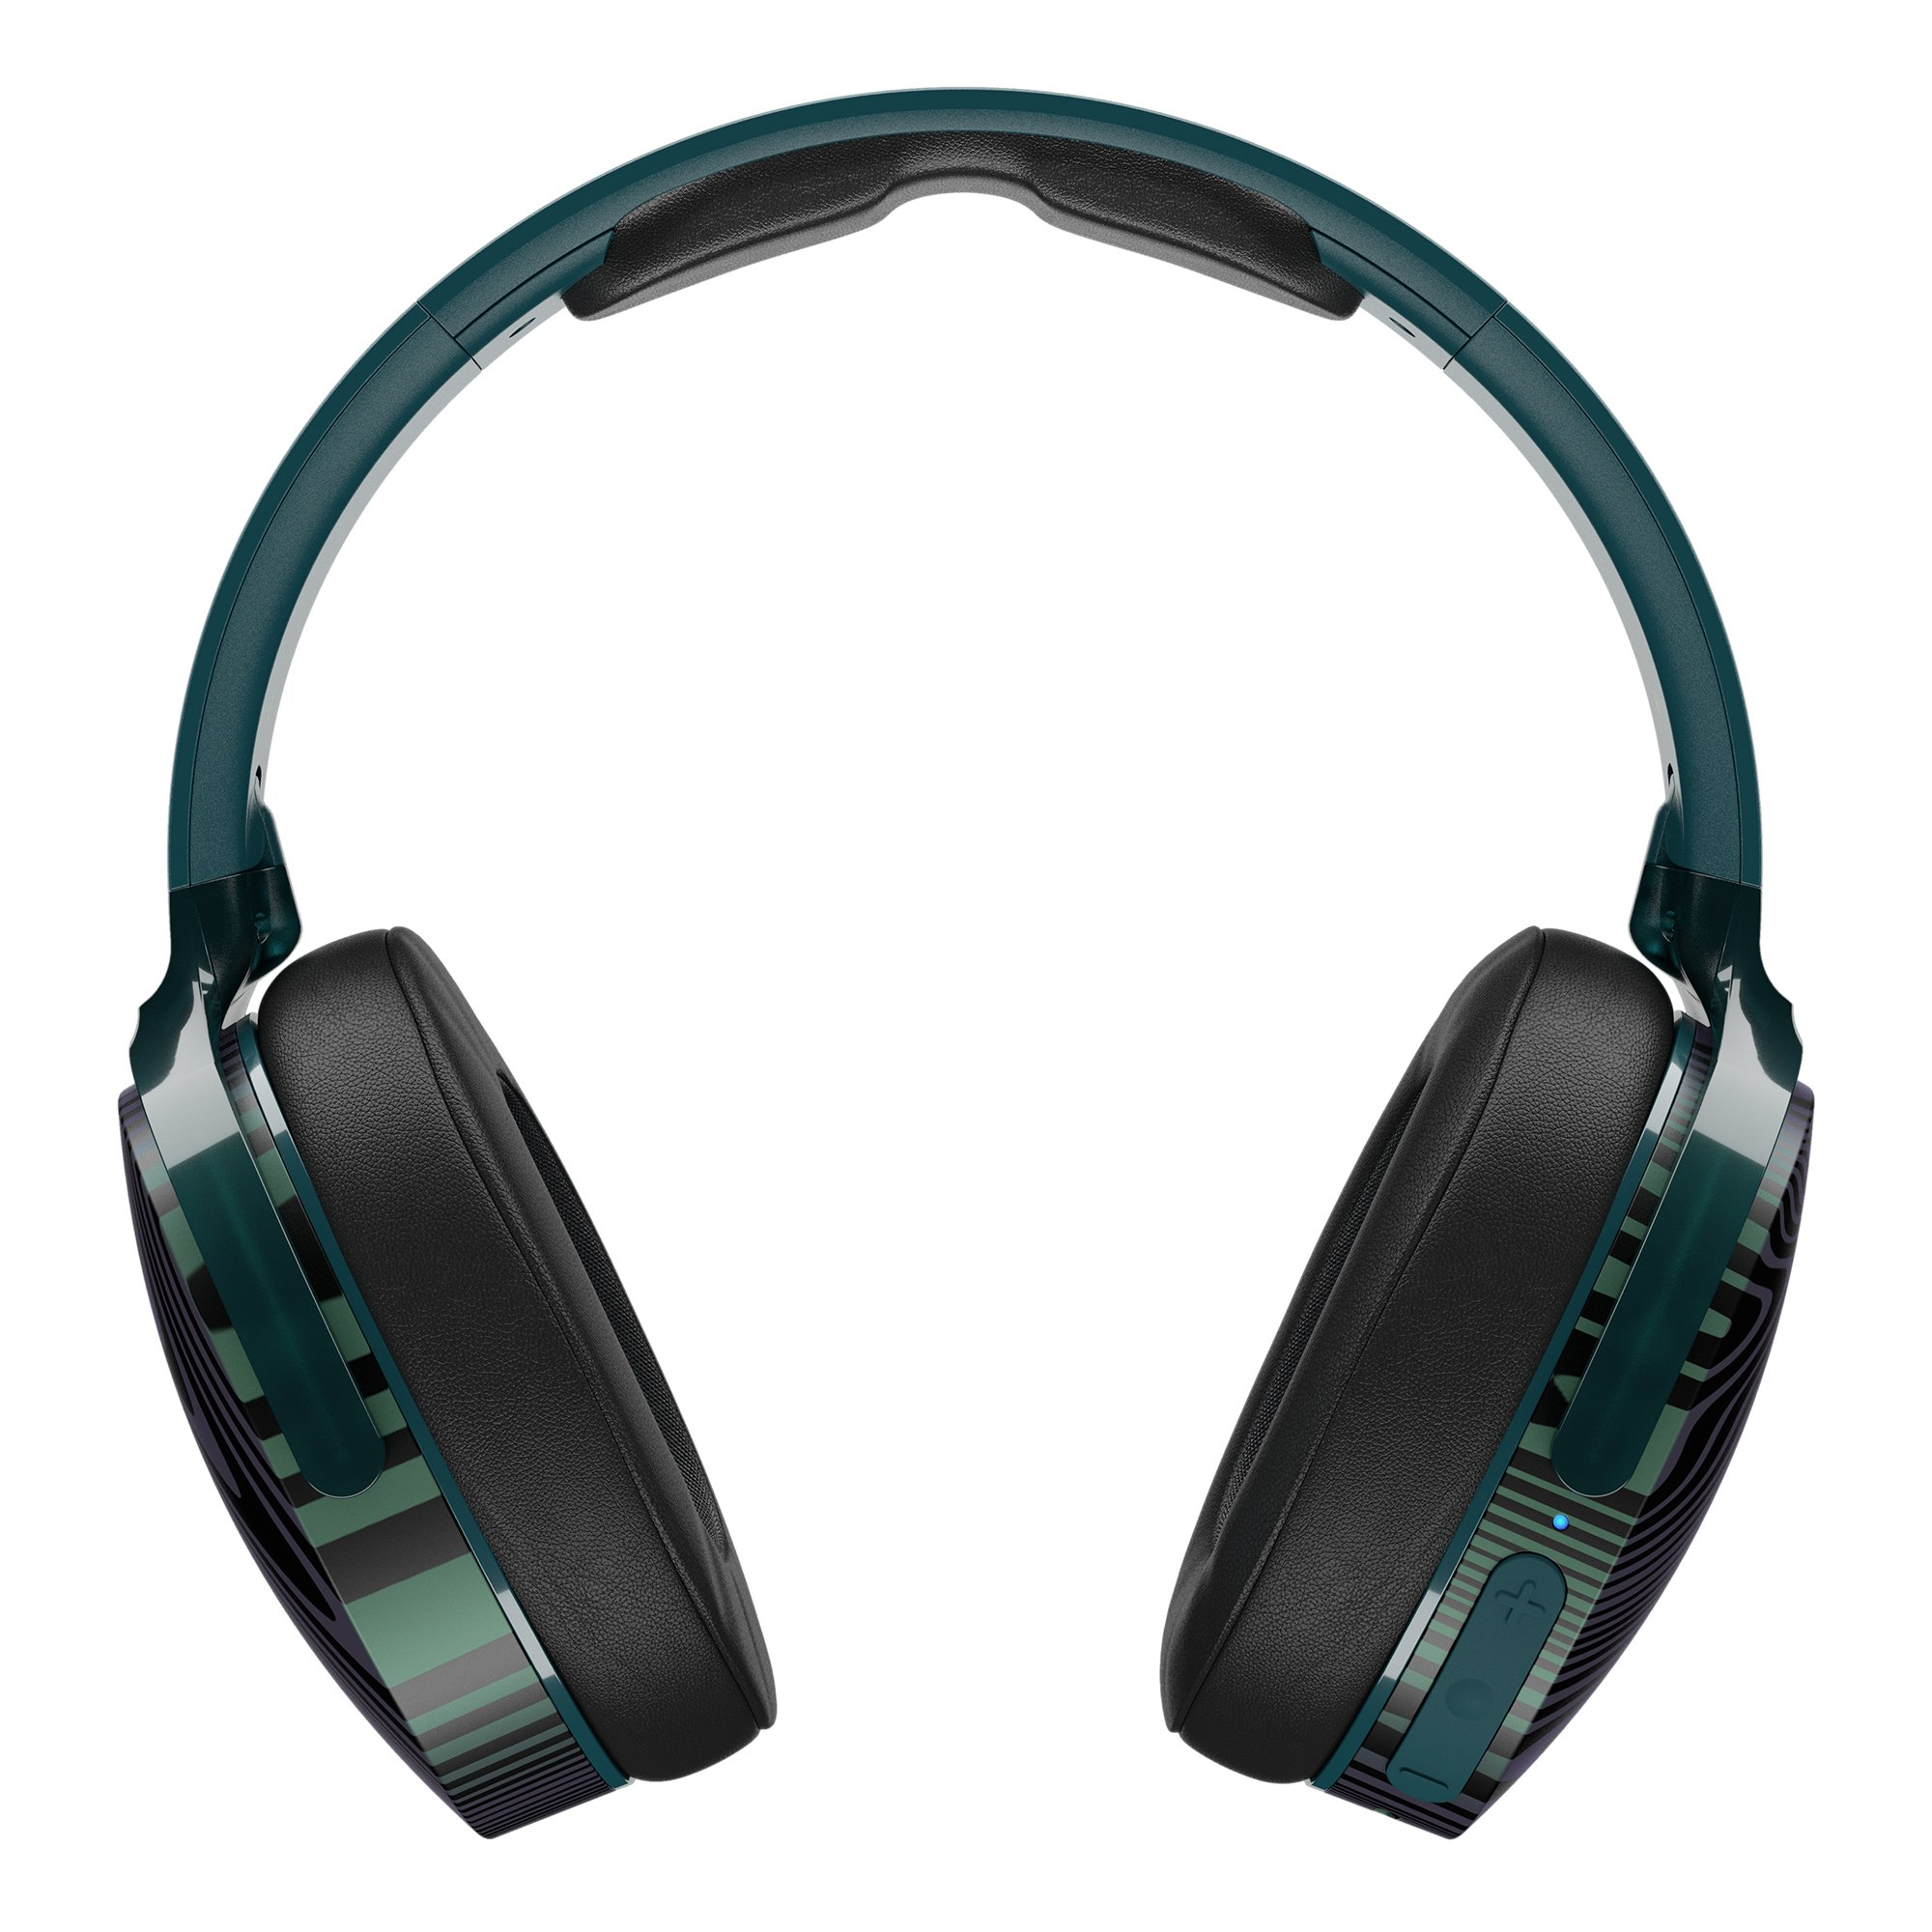 Skullcandy Hesh 3 Bluetooth Wireless Over-Ear Headphones with Microphone, Rapid Charge 22-Hour Battery, Foldable, Memory Foam Ear Cushions for Comfortable All-Day Fit, Psycho Tropical by Skullcandy